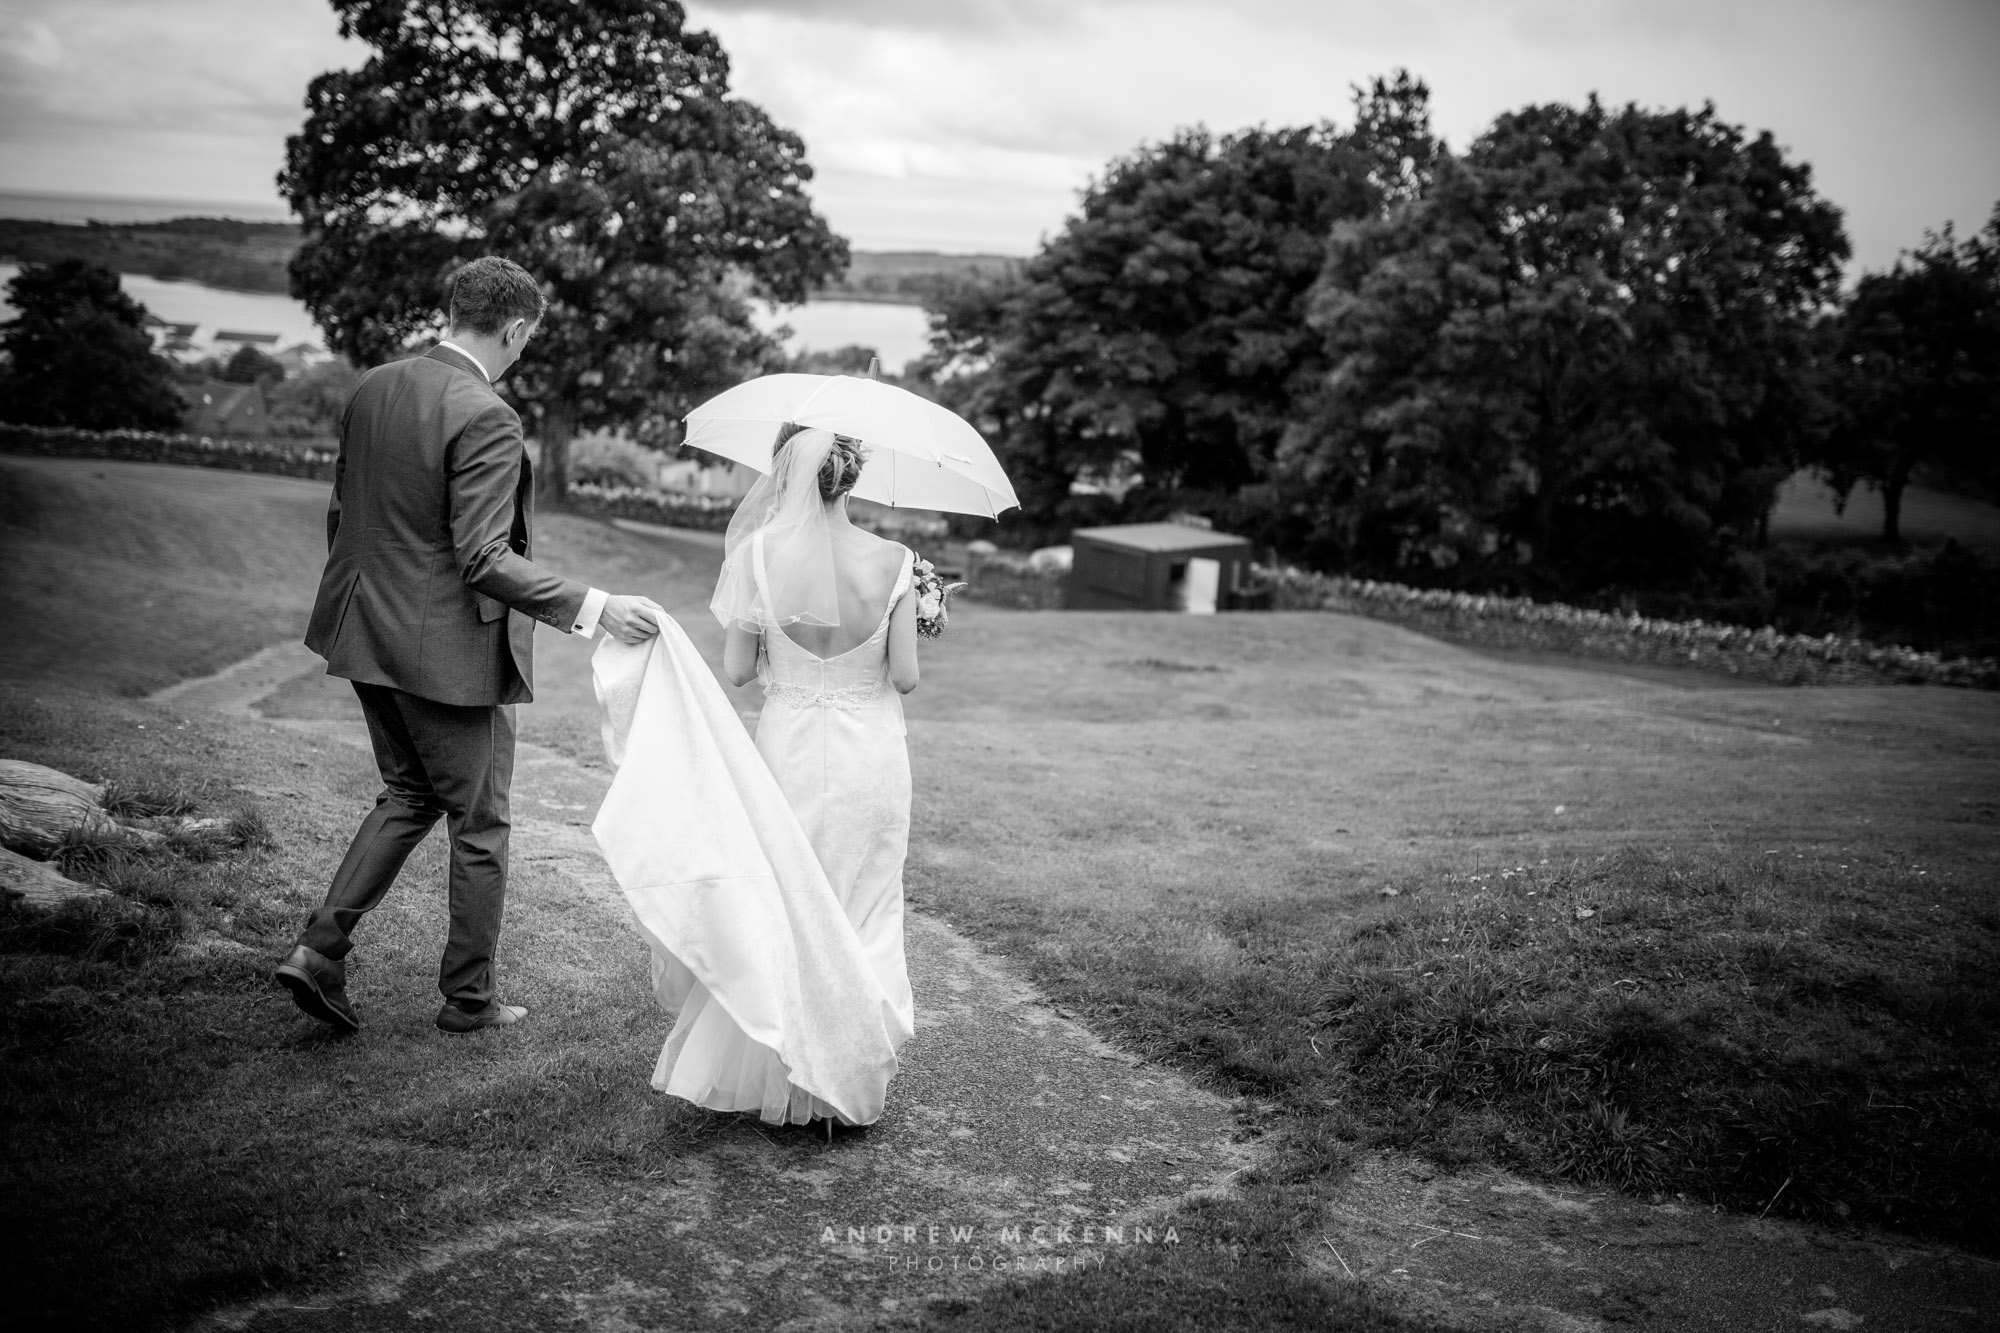 Wedding Photography. The Mill At Ballyduggan. Dundrum Castle Photographer By Andrew McKenna Photography Newcastle County Down, Northern Ireland.